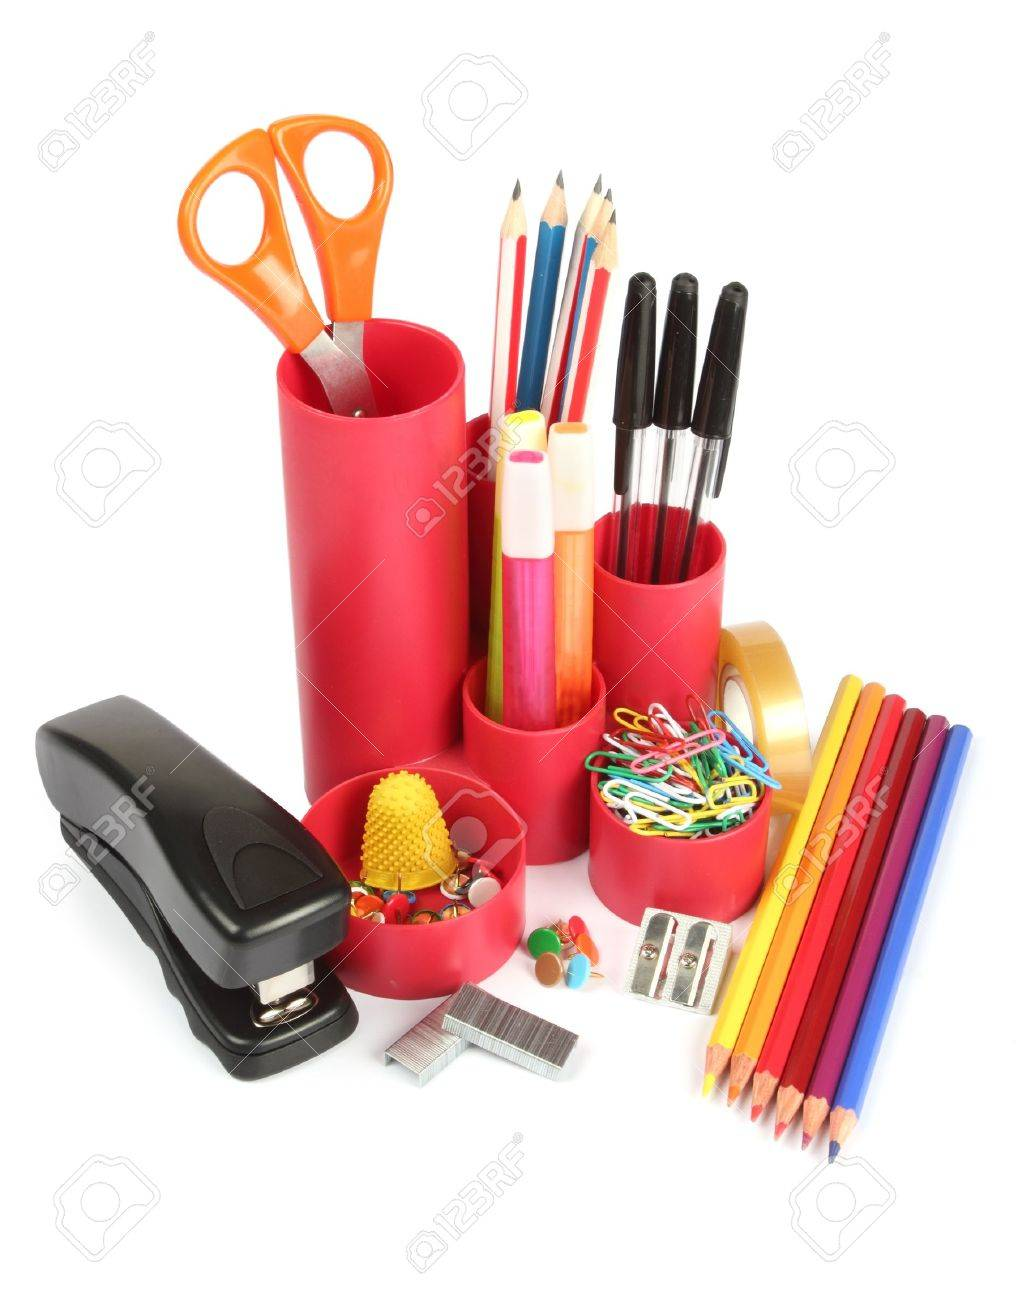 Assortment Of Office Stationery On A White Background Stock Photo ...